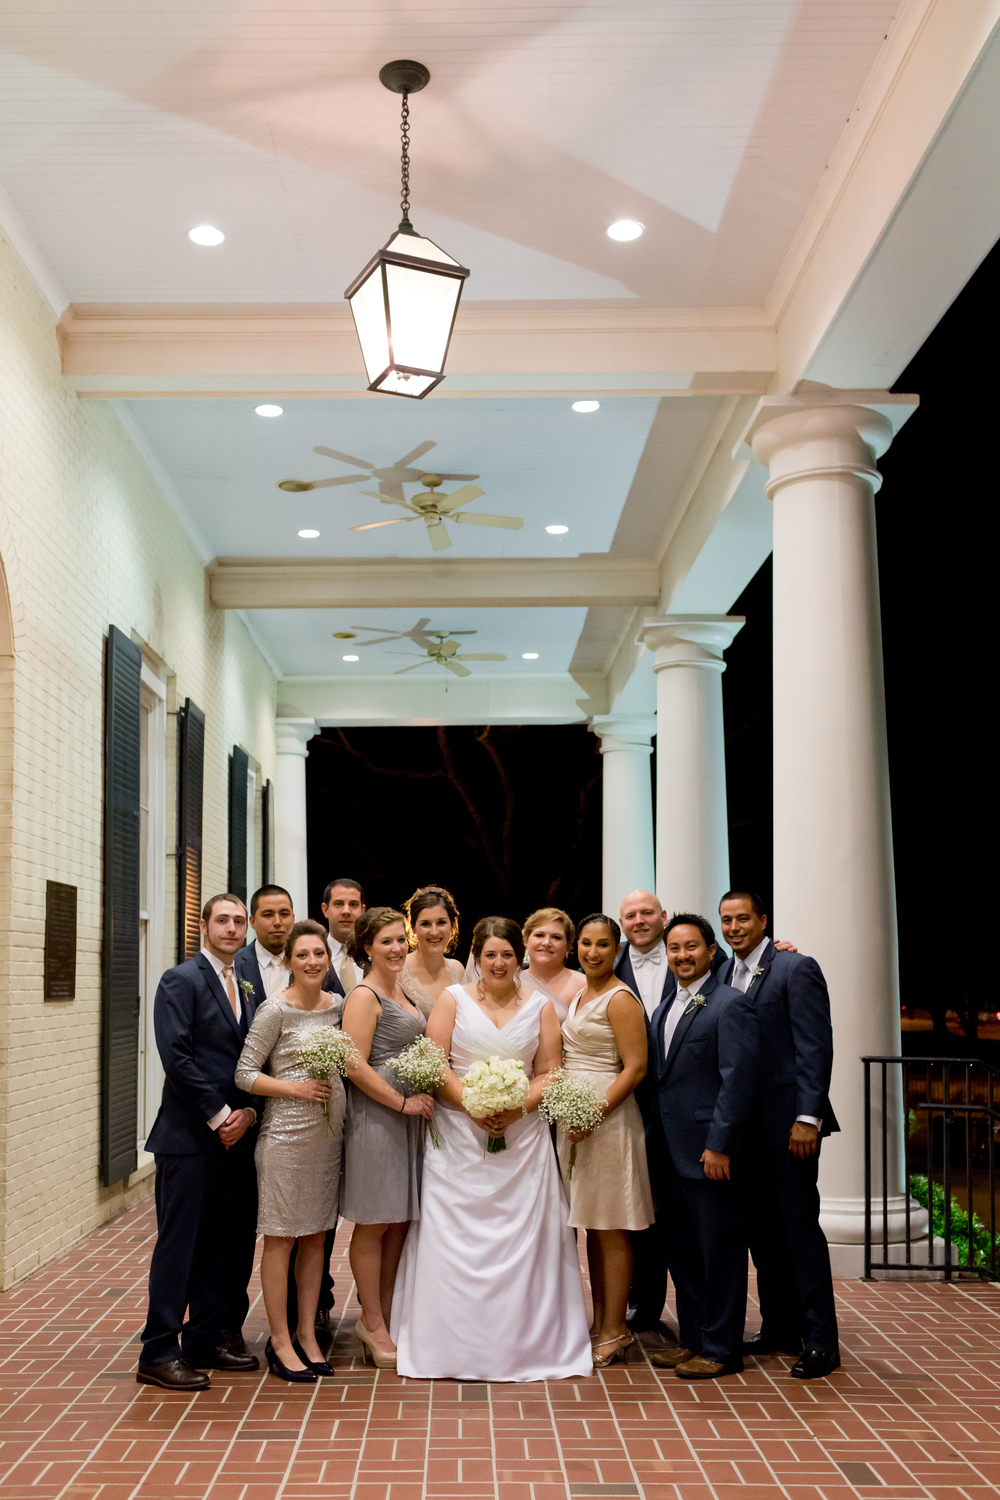 wedding party group photo at Biloxi Visitors Center porch at night